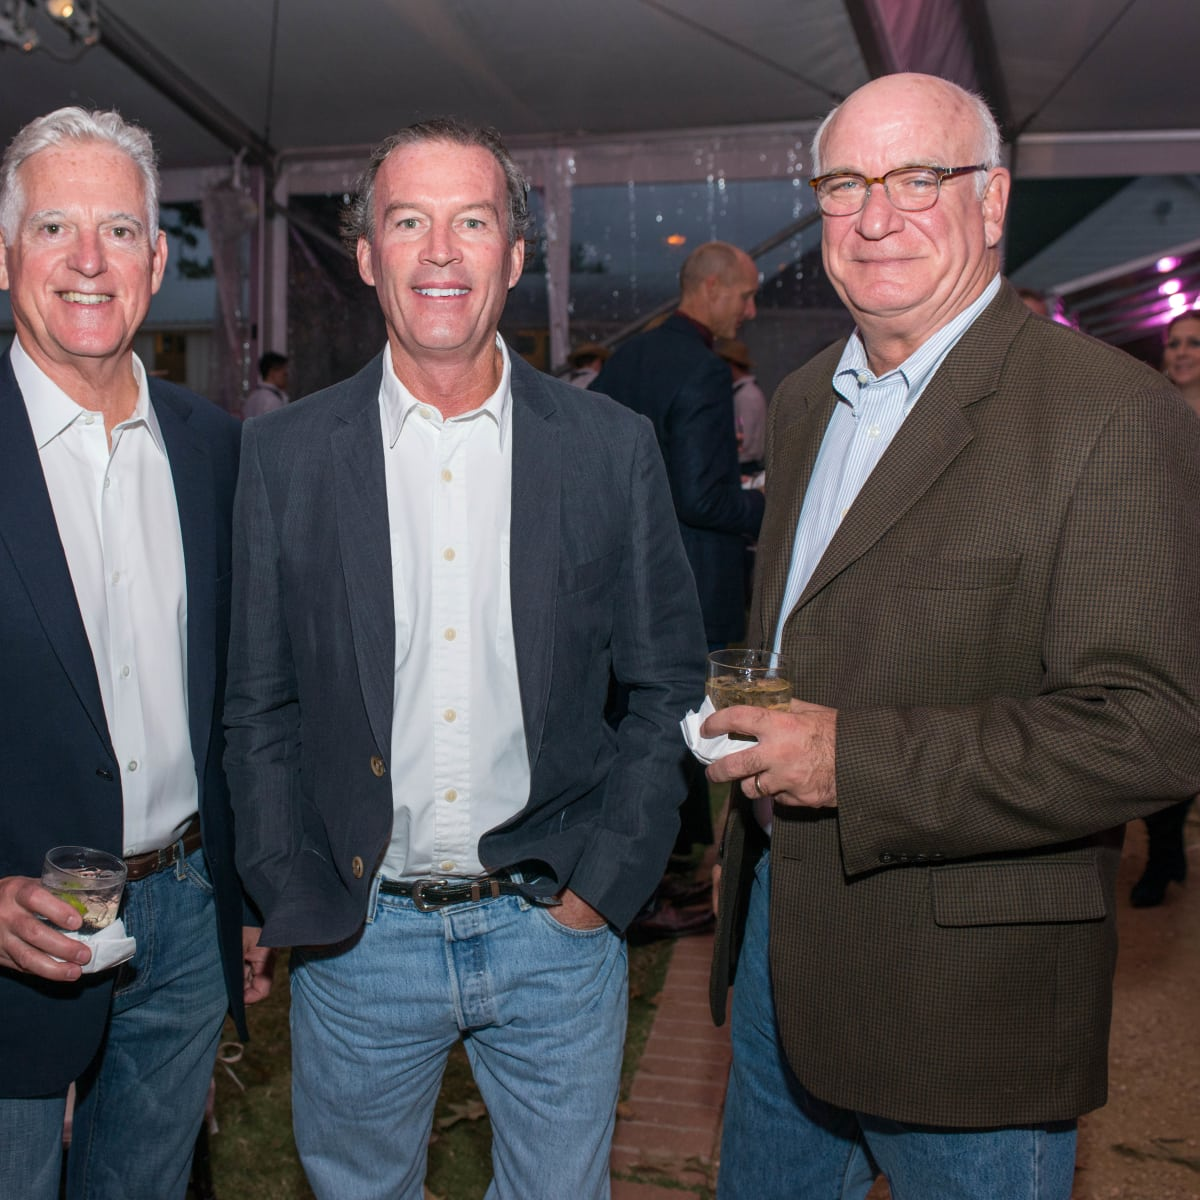 News, Shelby, Nature Conservancy gala, Oct. 2015, Dana Roy, J. Martin, Tommy Atkins,